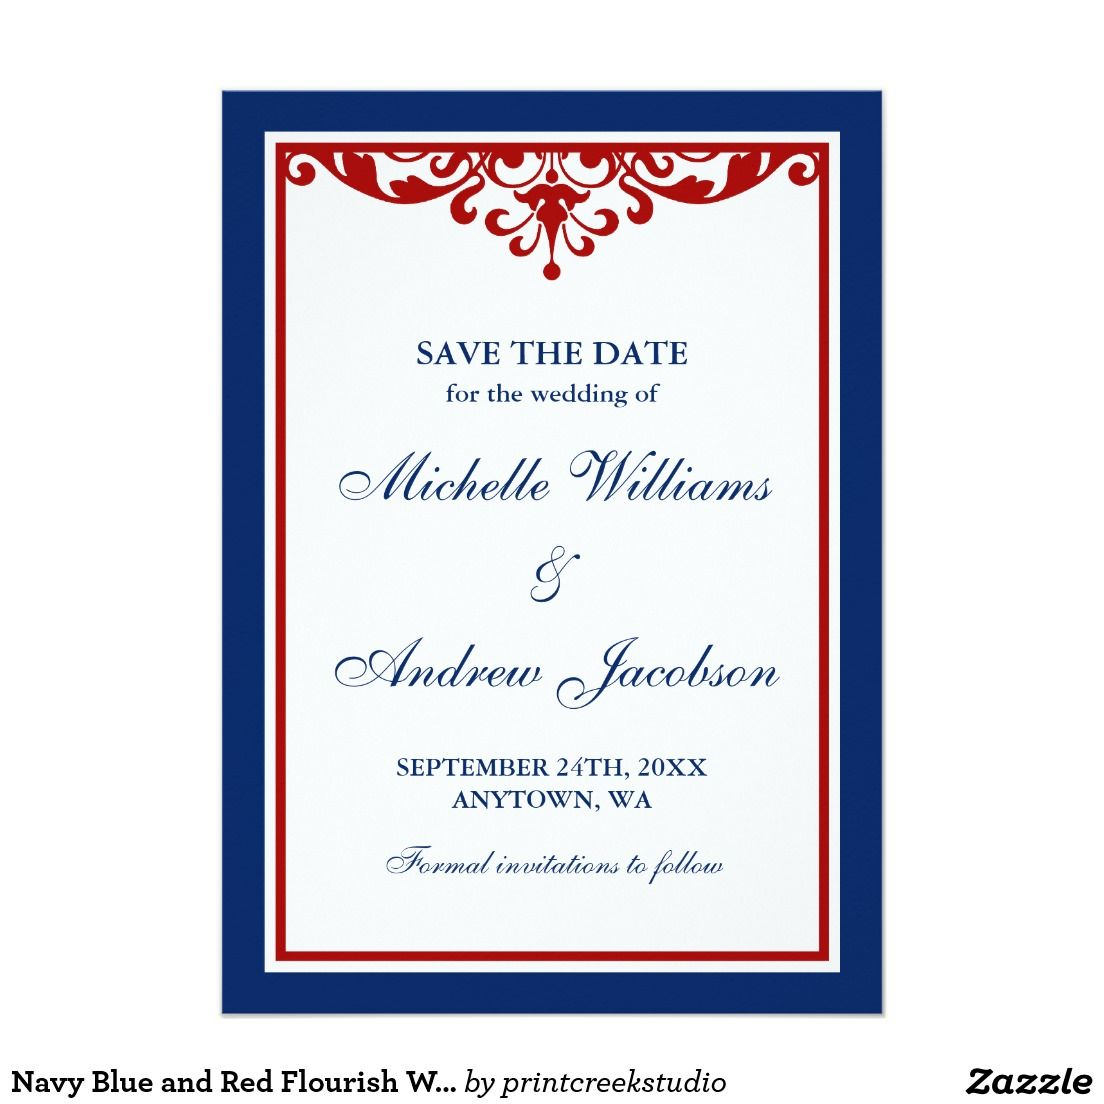 Navy Blue and Red Flourish Wedding Save the Date Card | Flourish and ...